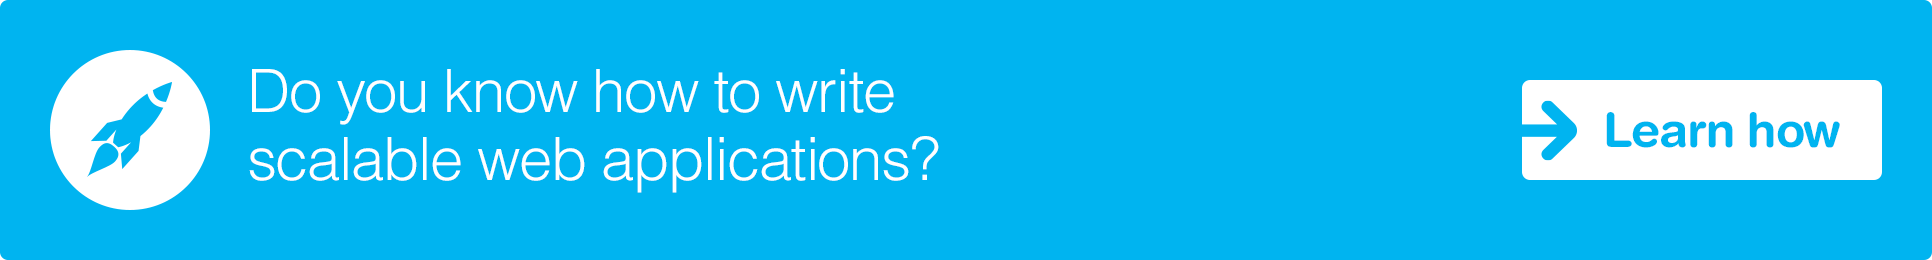 Learn how to write scalable web applications